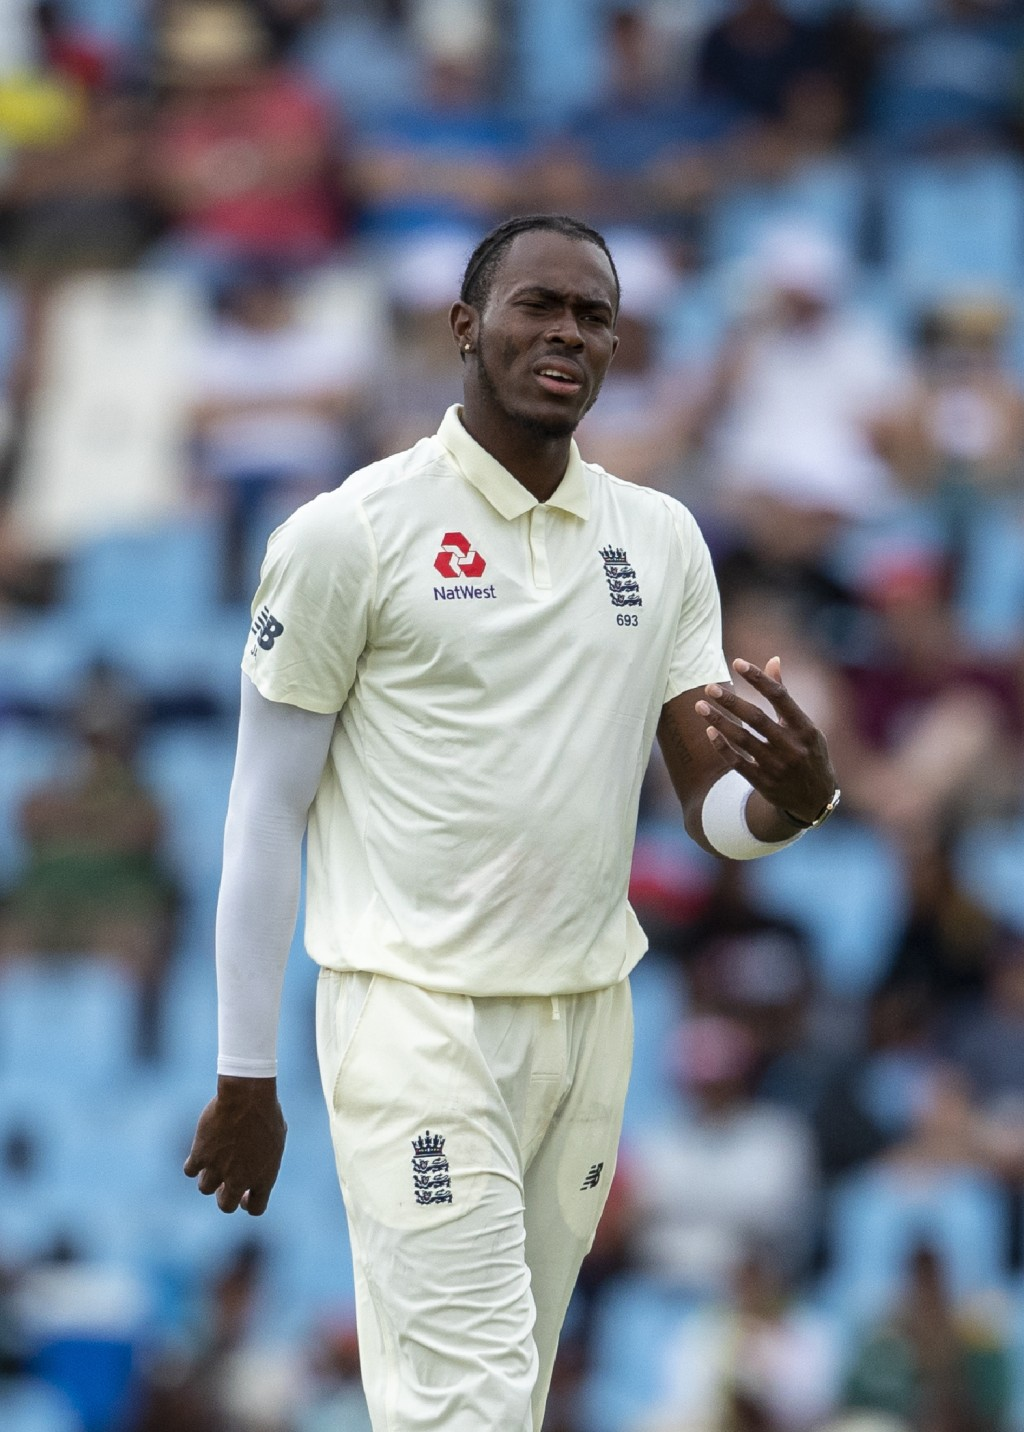 England's bowler Jofra Archer reacts after his delivery against South Africa's batsman Kagiso Rabada on day three of the first cricket test match betw...